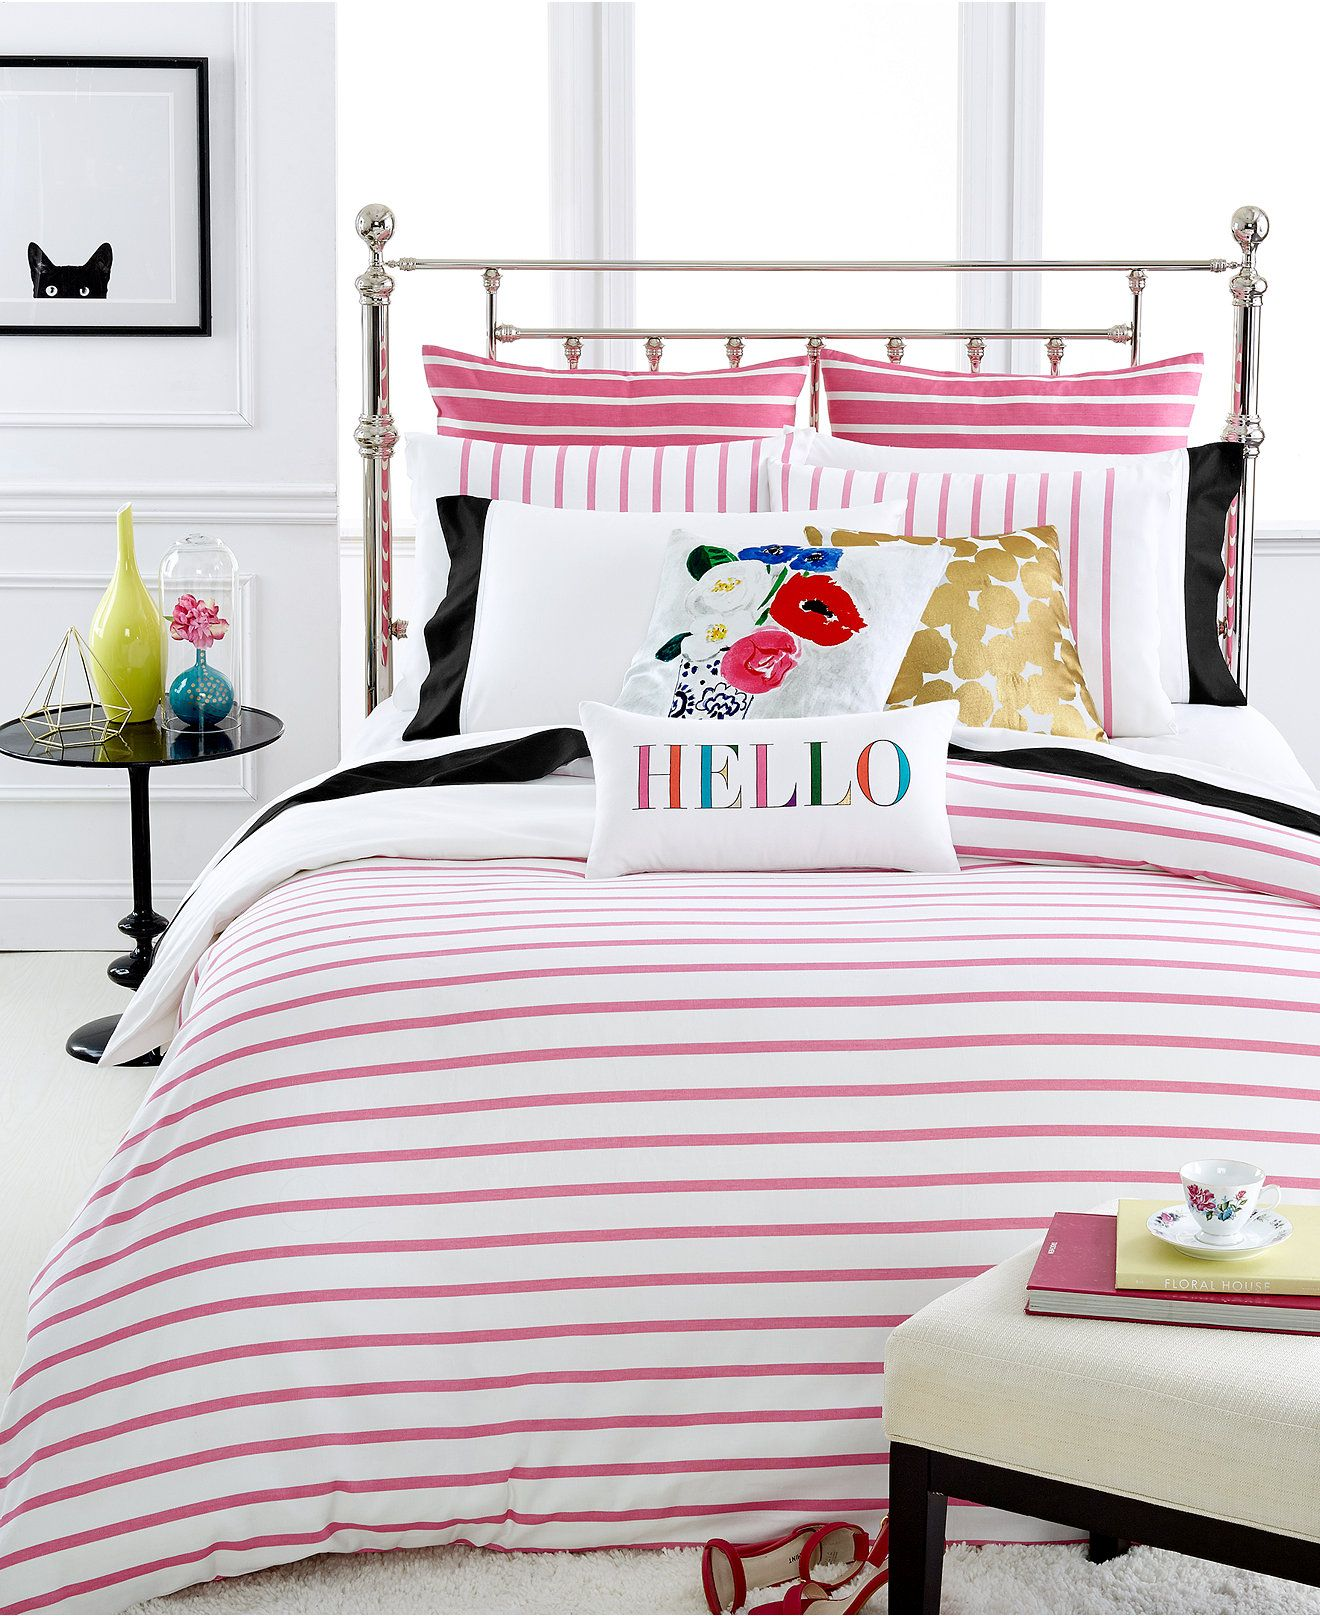 Bedding jardin collection bedding collections bed amp bath macy s - Kate Spade New York Harbour Stripe Shocking Pink Comforter And Duvet Cover Sets Bedding Collections Bed Bath Macy S